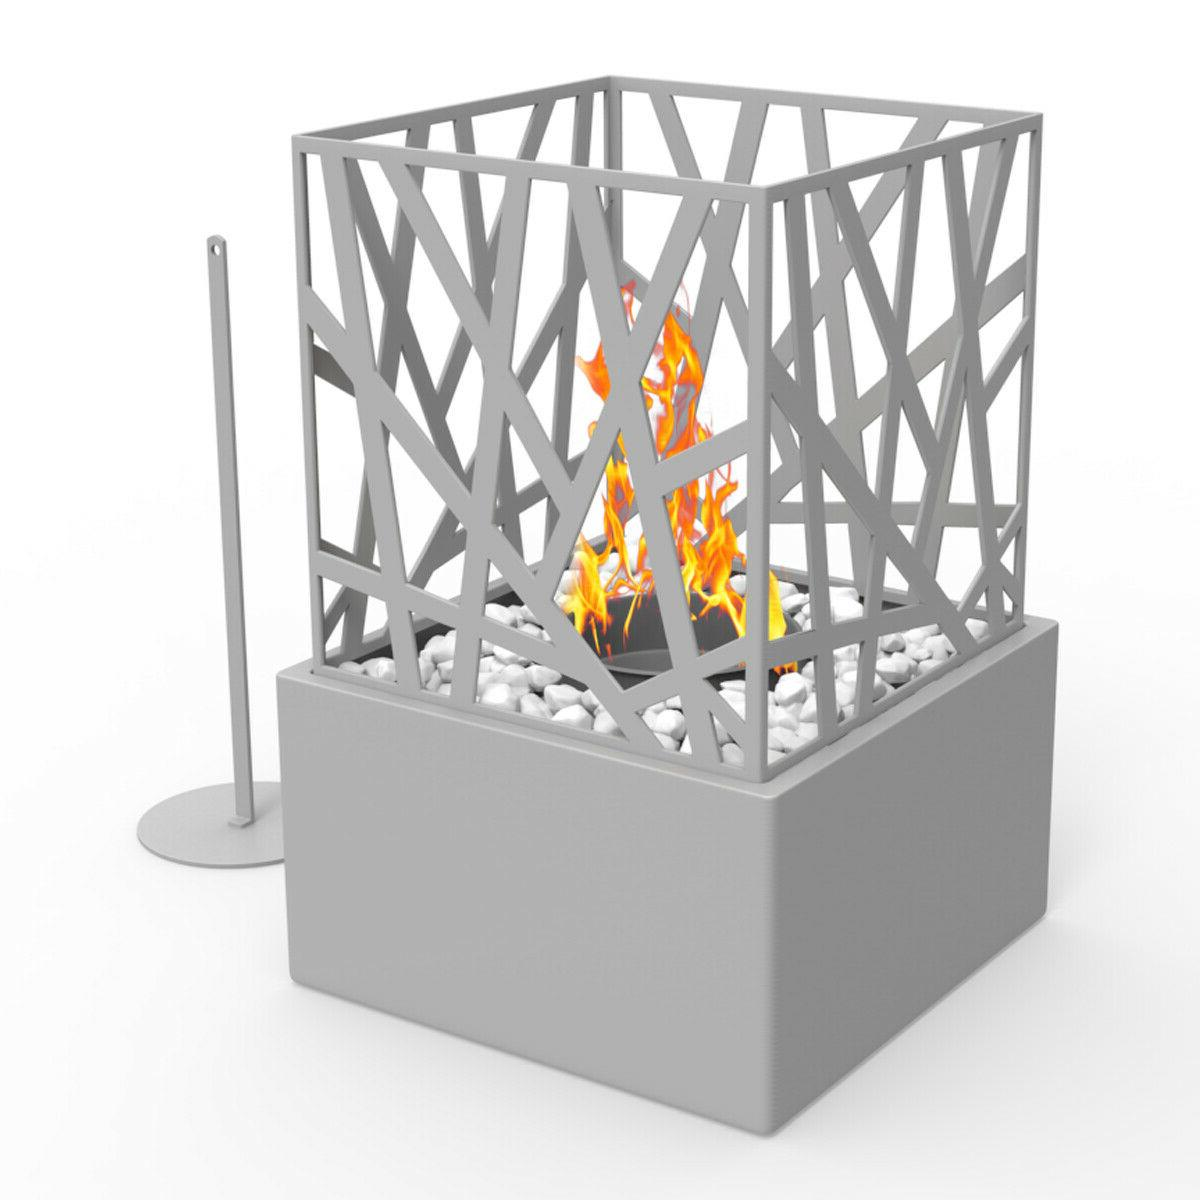 Small Tabletop Heater Patio Deck Gas Fireplace Fire Pit Prop